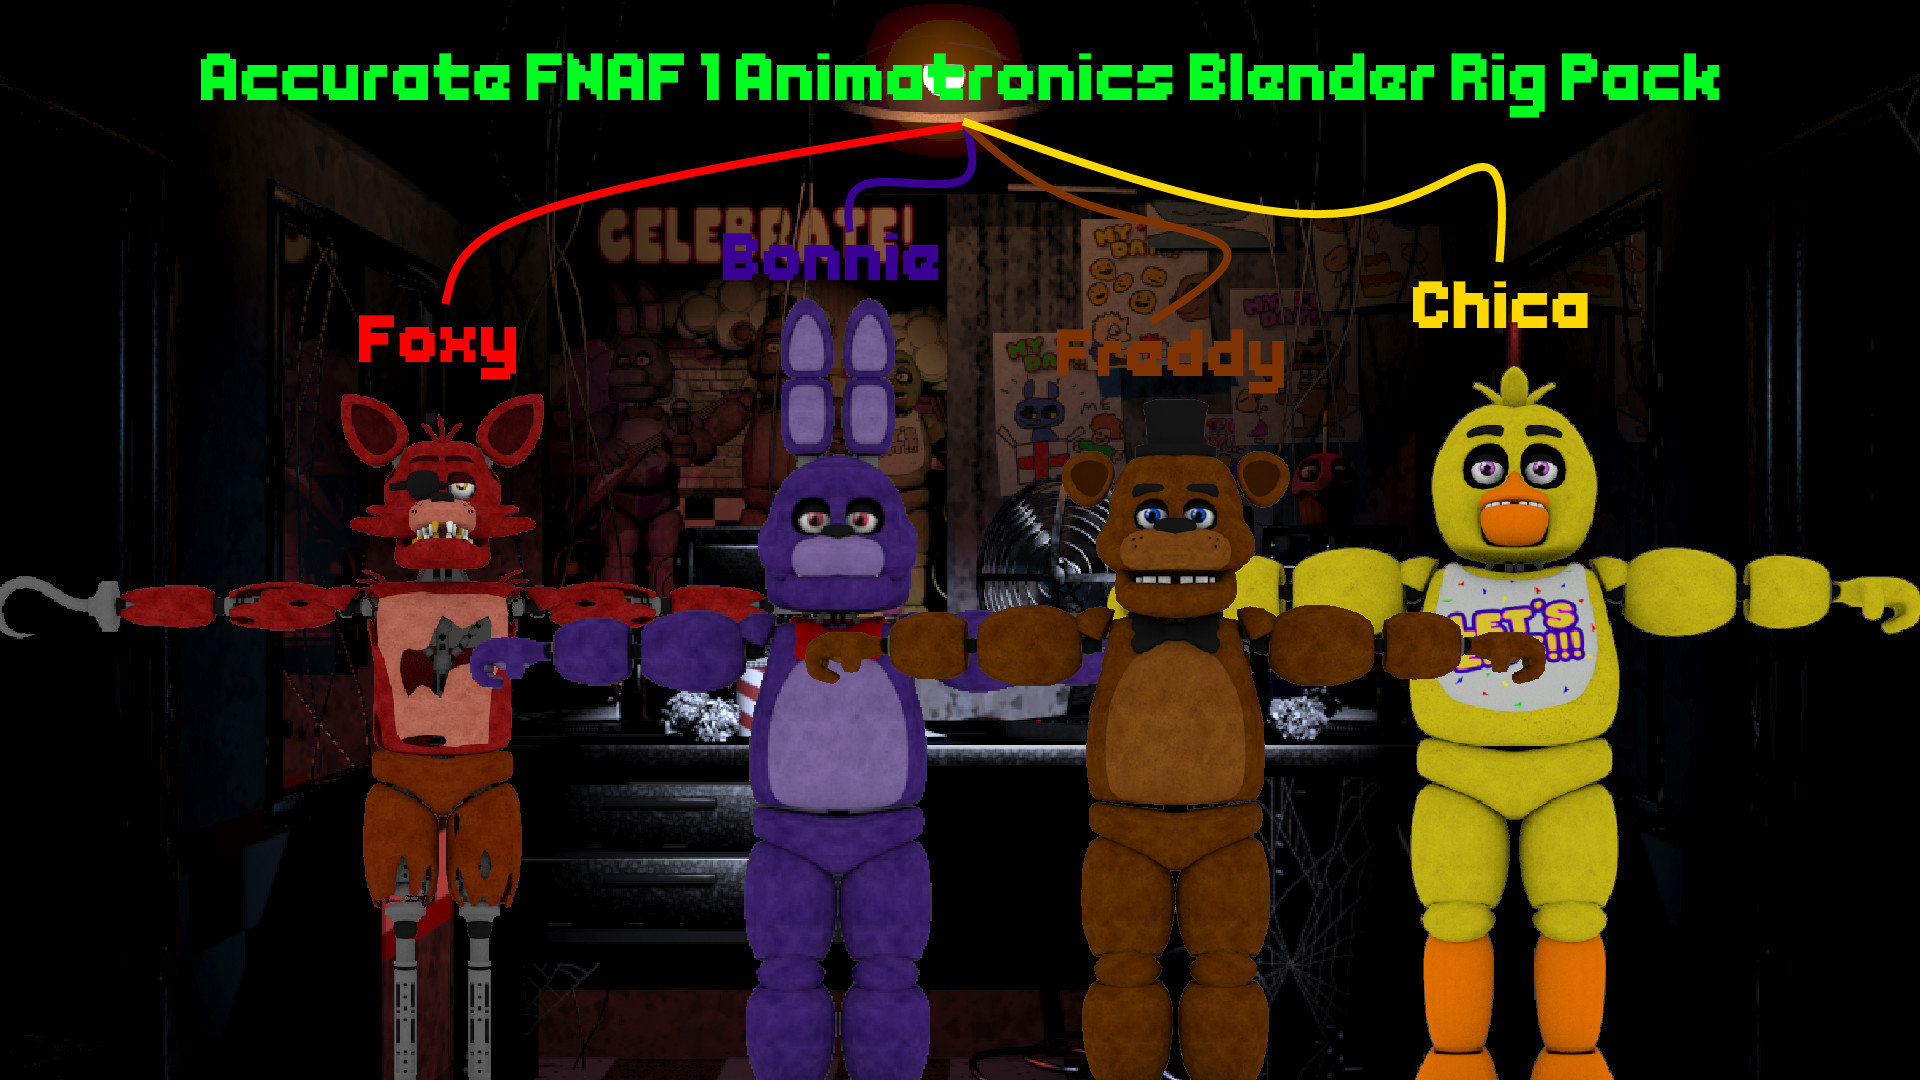 Res: 1920x1080, ... Accurate FNAF 1 Animatronics Blender Rig Pack (DL) by Coreycool99